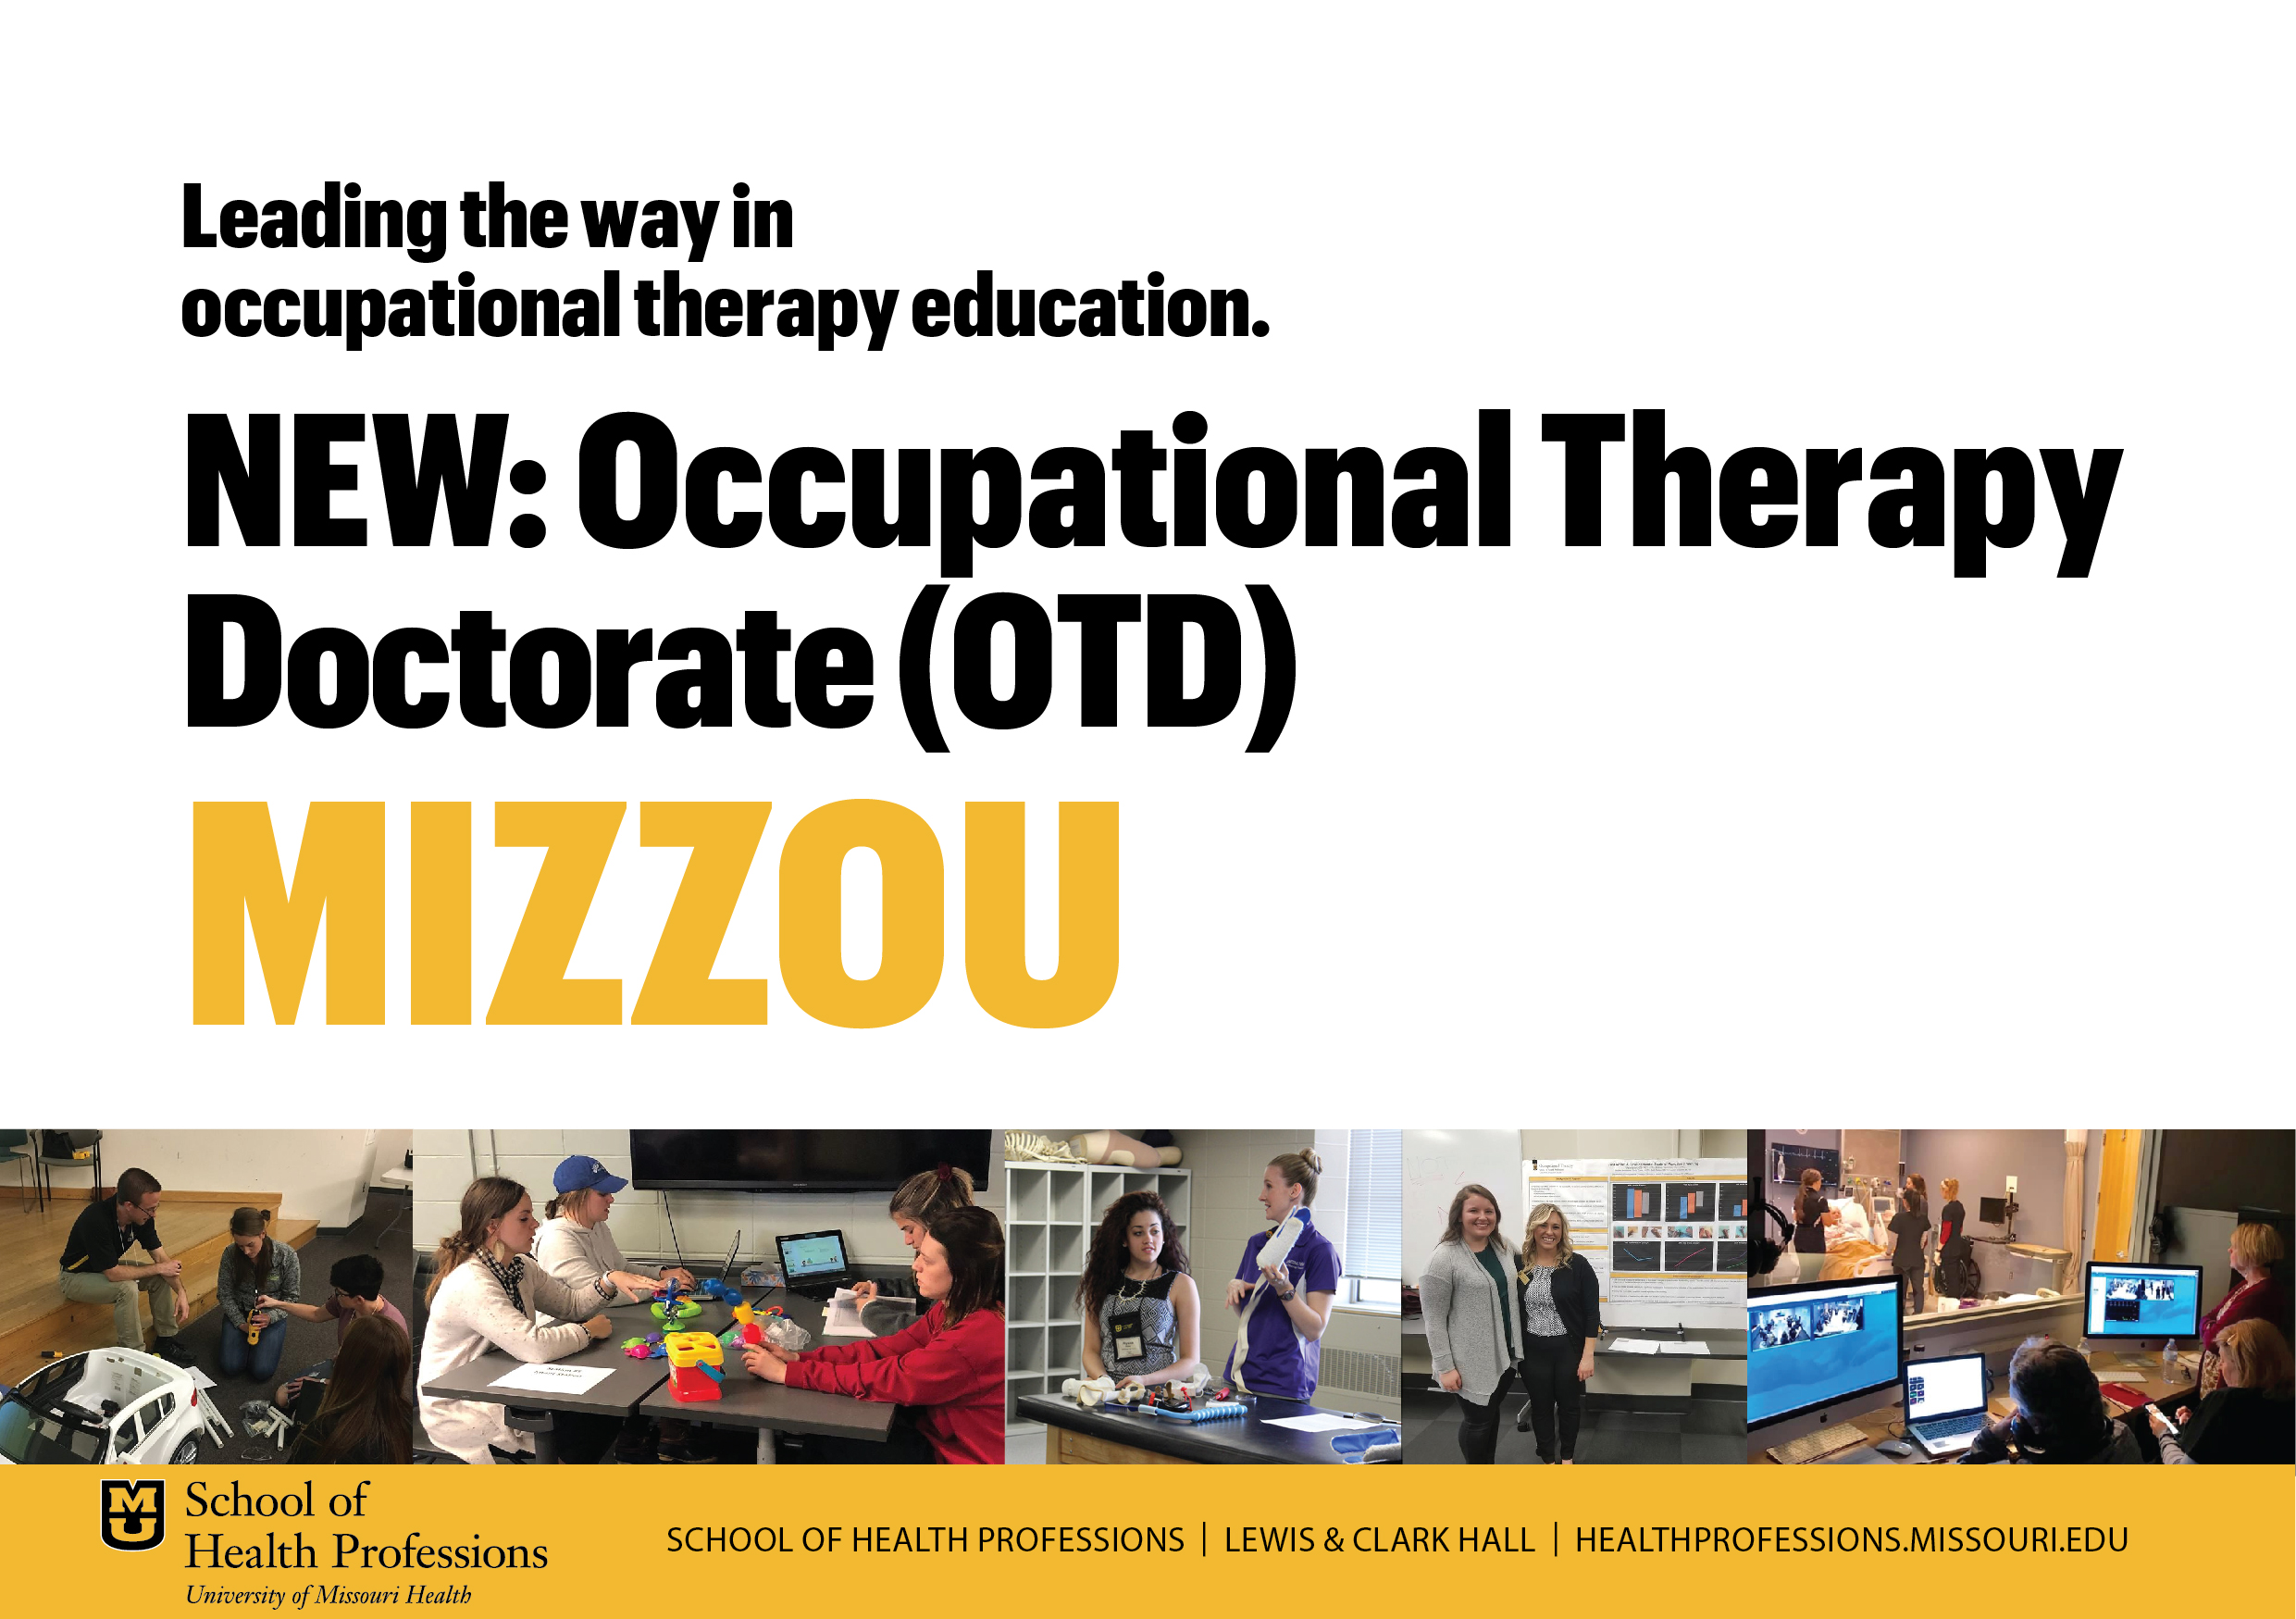 promotional image for occupational therapy doctorate program